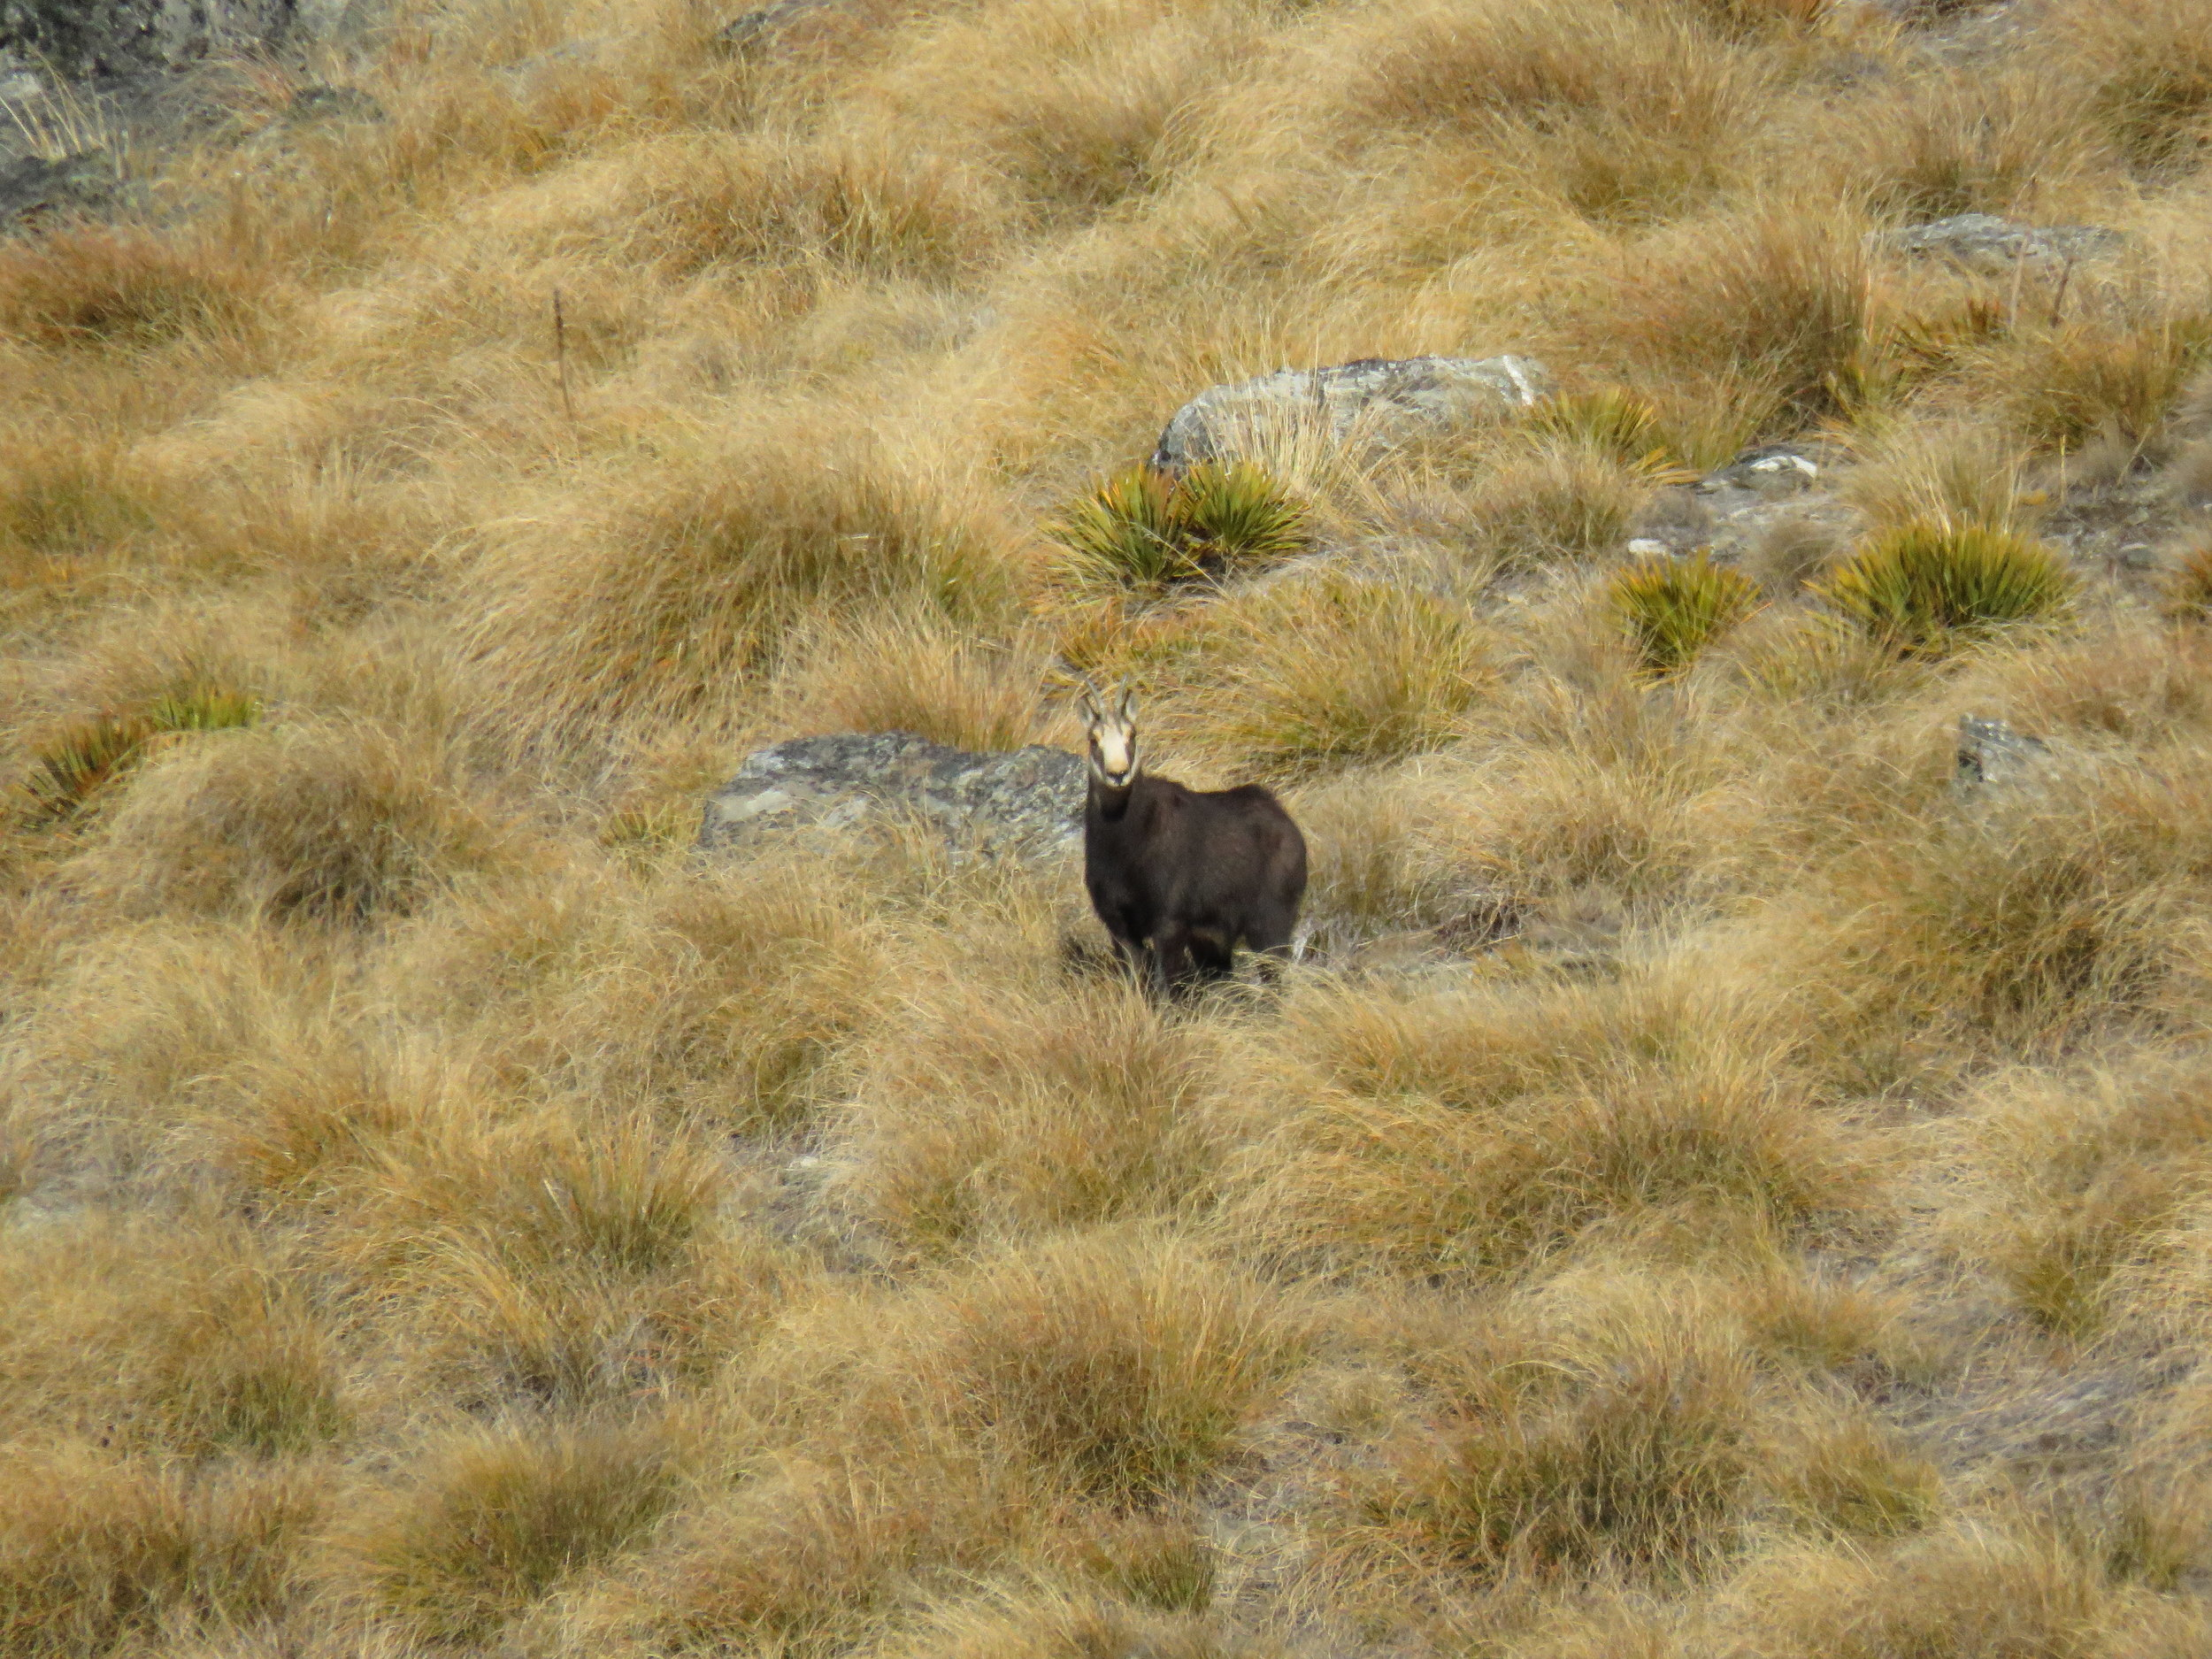 chamois in the tussock